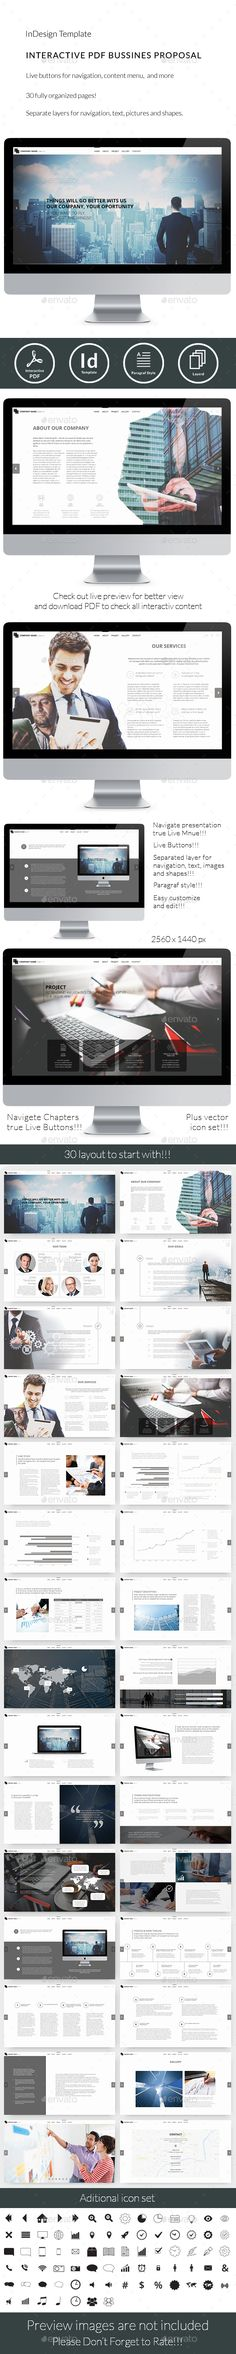 Interactive PDF Business Proposal No1  — InDesign Template #interactive #pc • Download ➝ https://graphicriver.net/item/interactive-pdf-business-proposal-no1/18157262?ref=pxcr